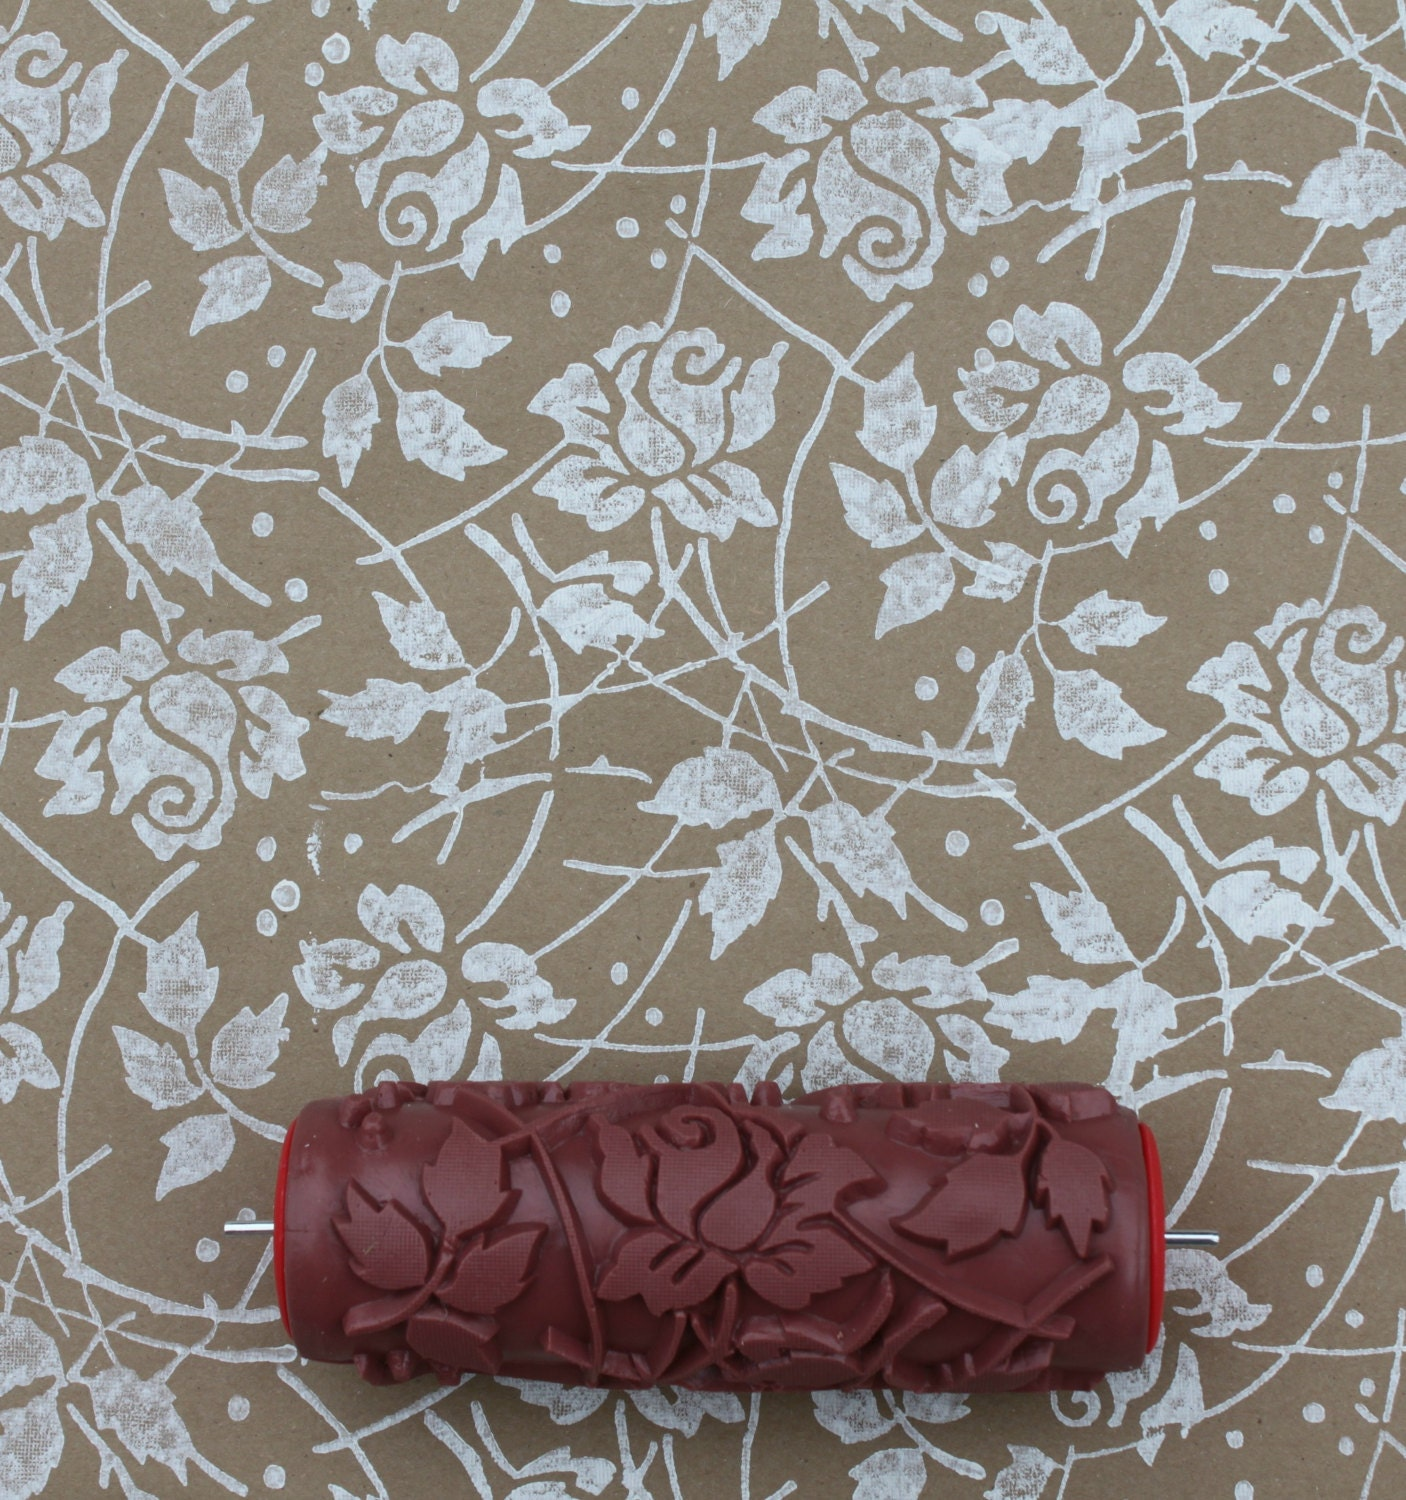 Wall Design Paint Roller : Etsy your place to buy and sell all things handmade